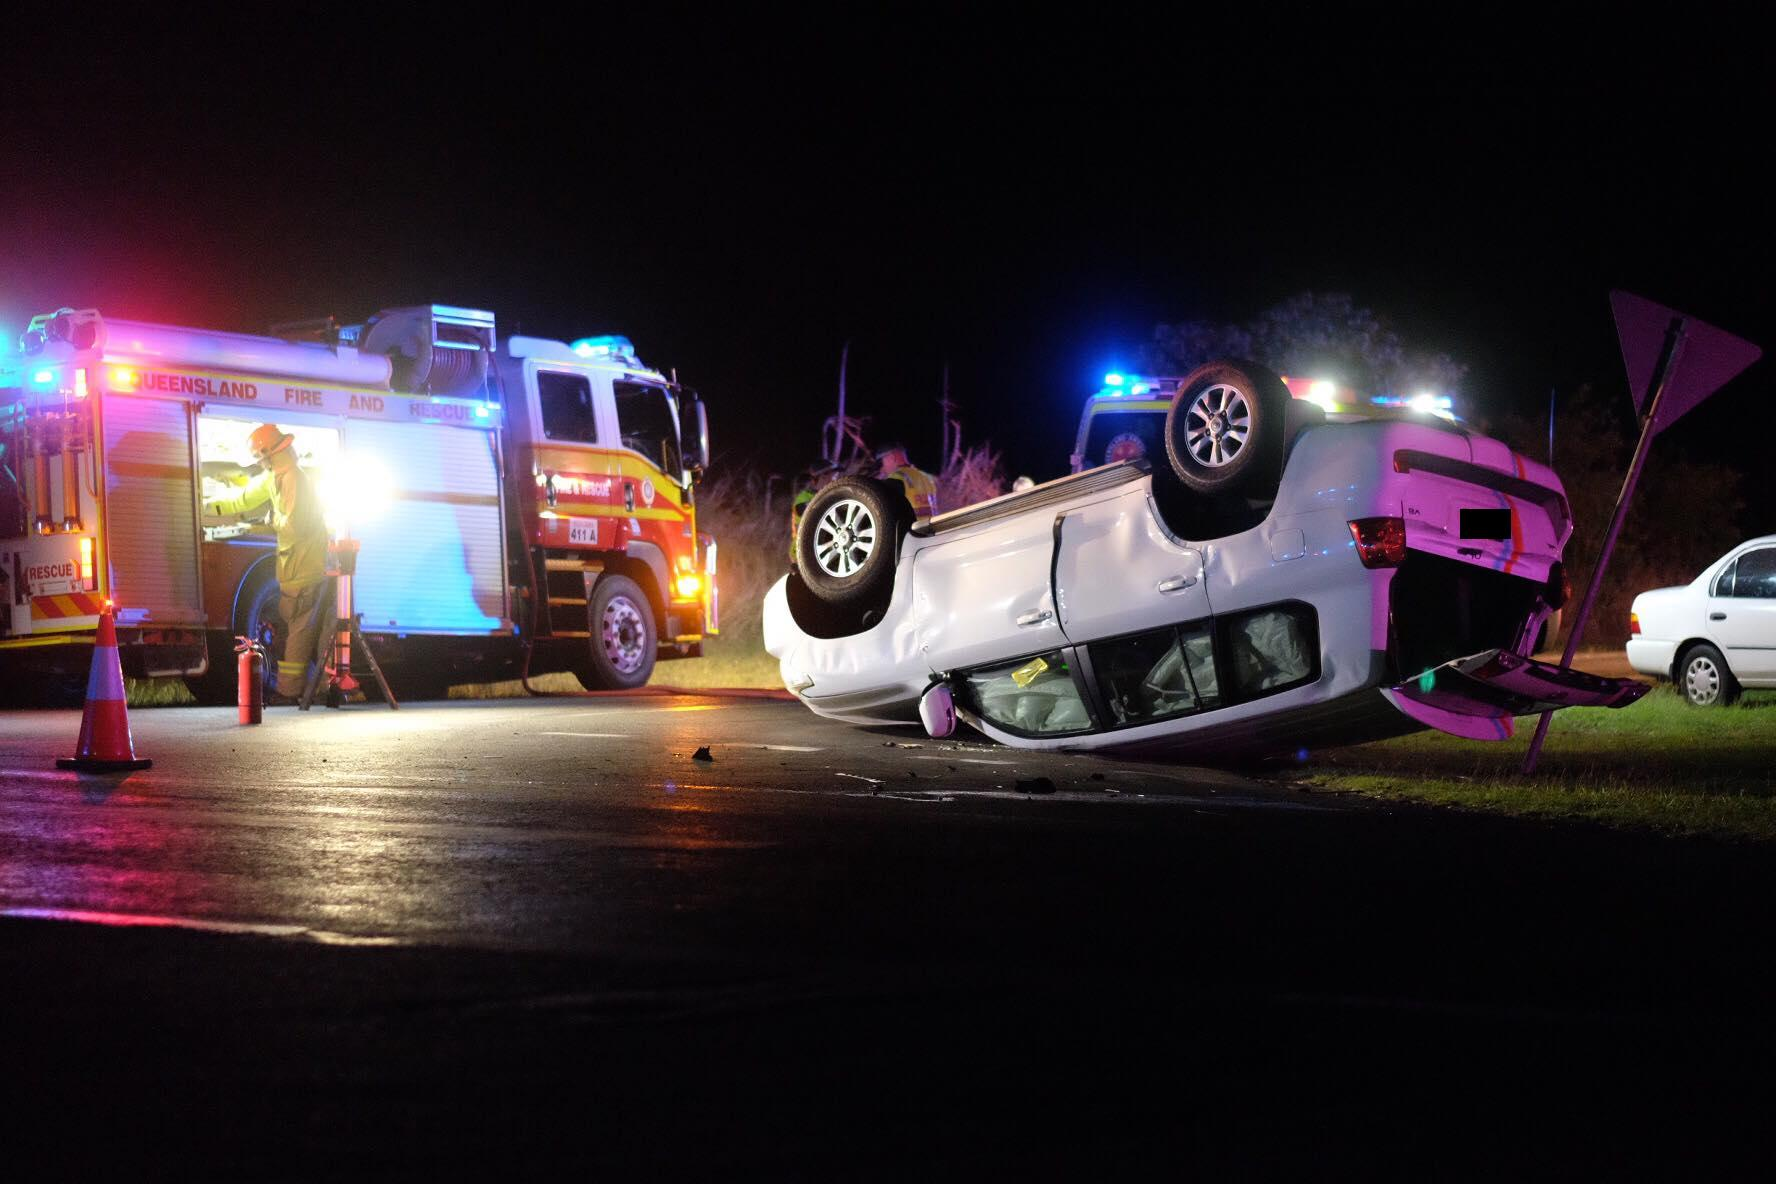 FRIGHT NIGHT: One of the vehicles in a two-car crash at Bargara tonight ended up on its roof.